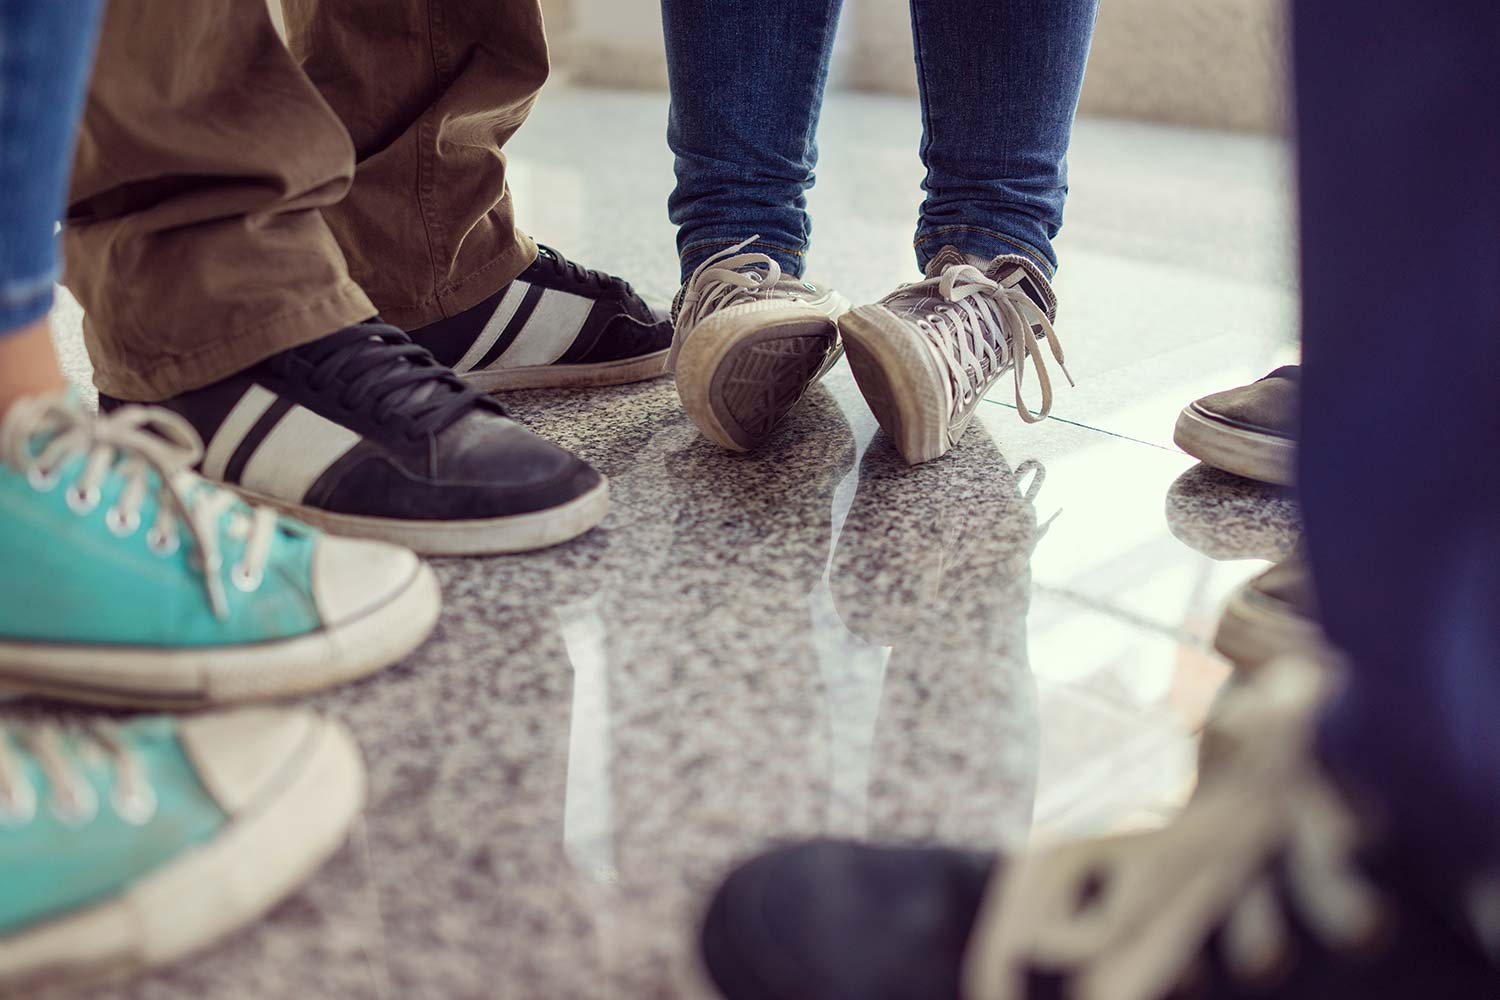 An image of young people footwear representing Clapham Common Boys Club supported by the Ellis Campbell Foundation